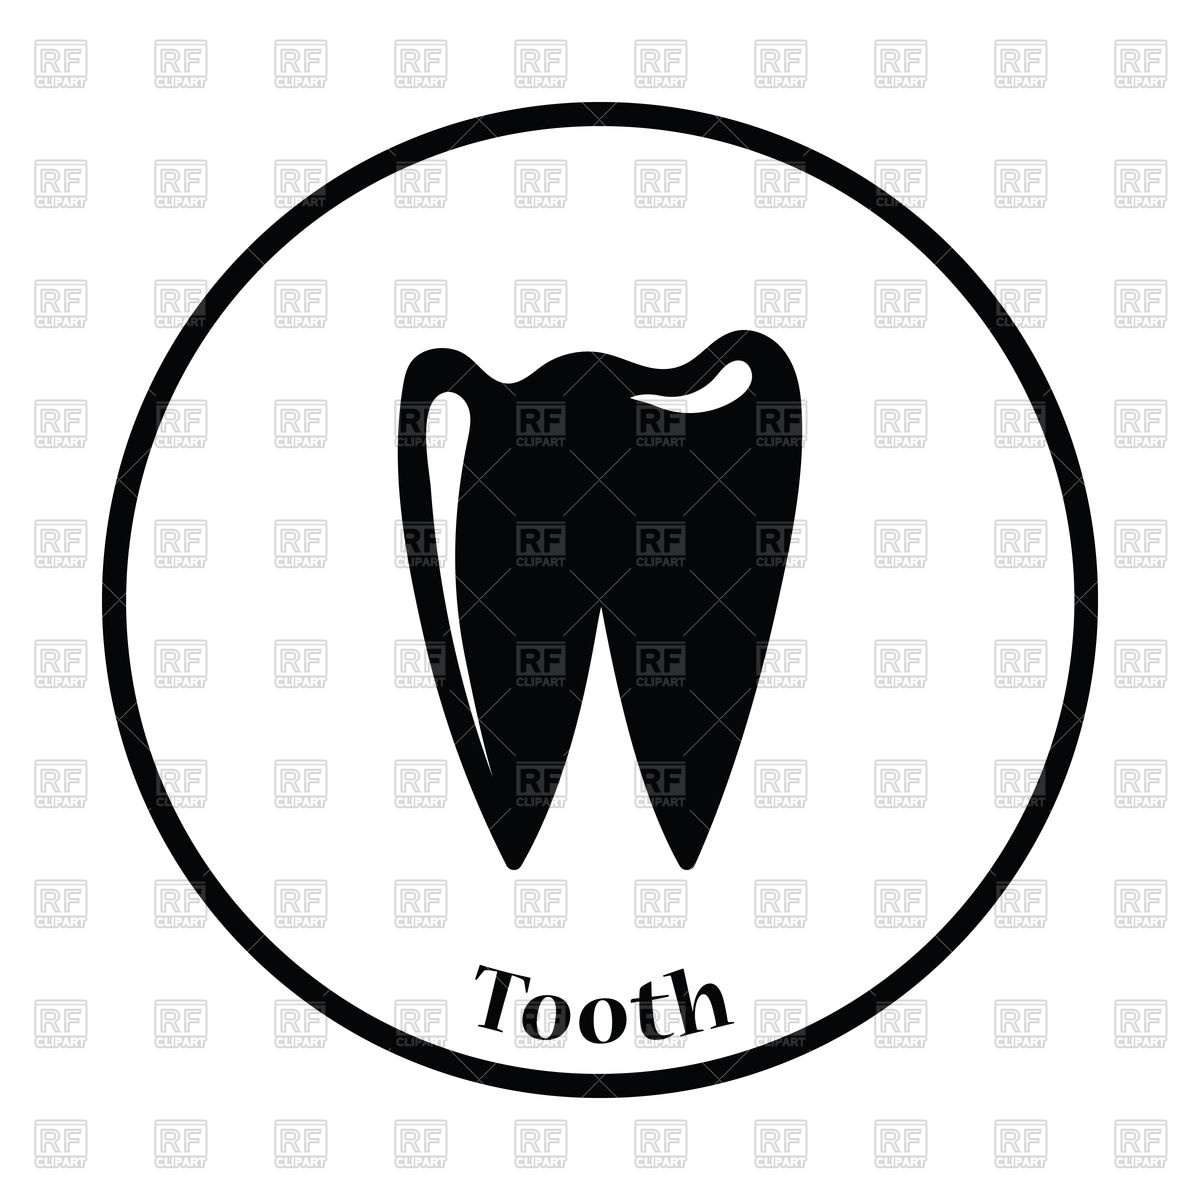 1200x1200 Thin Circle Design Of Tooth Icon Vector Image Vector Artwork Of